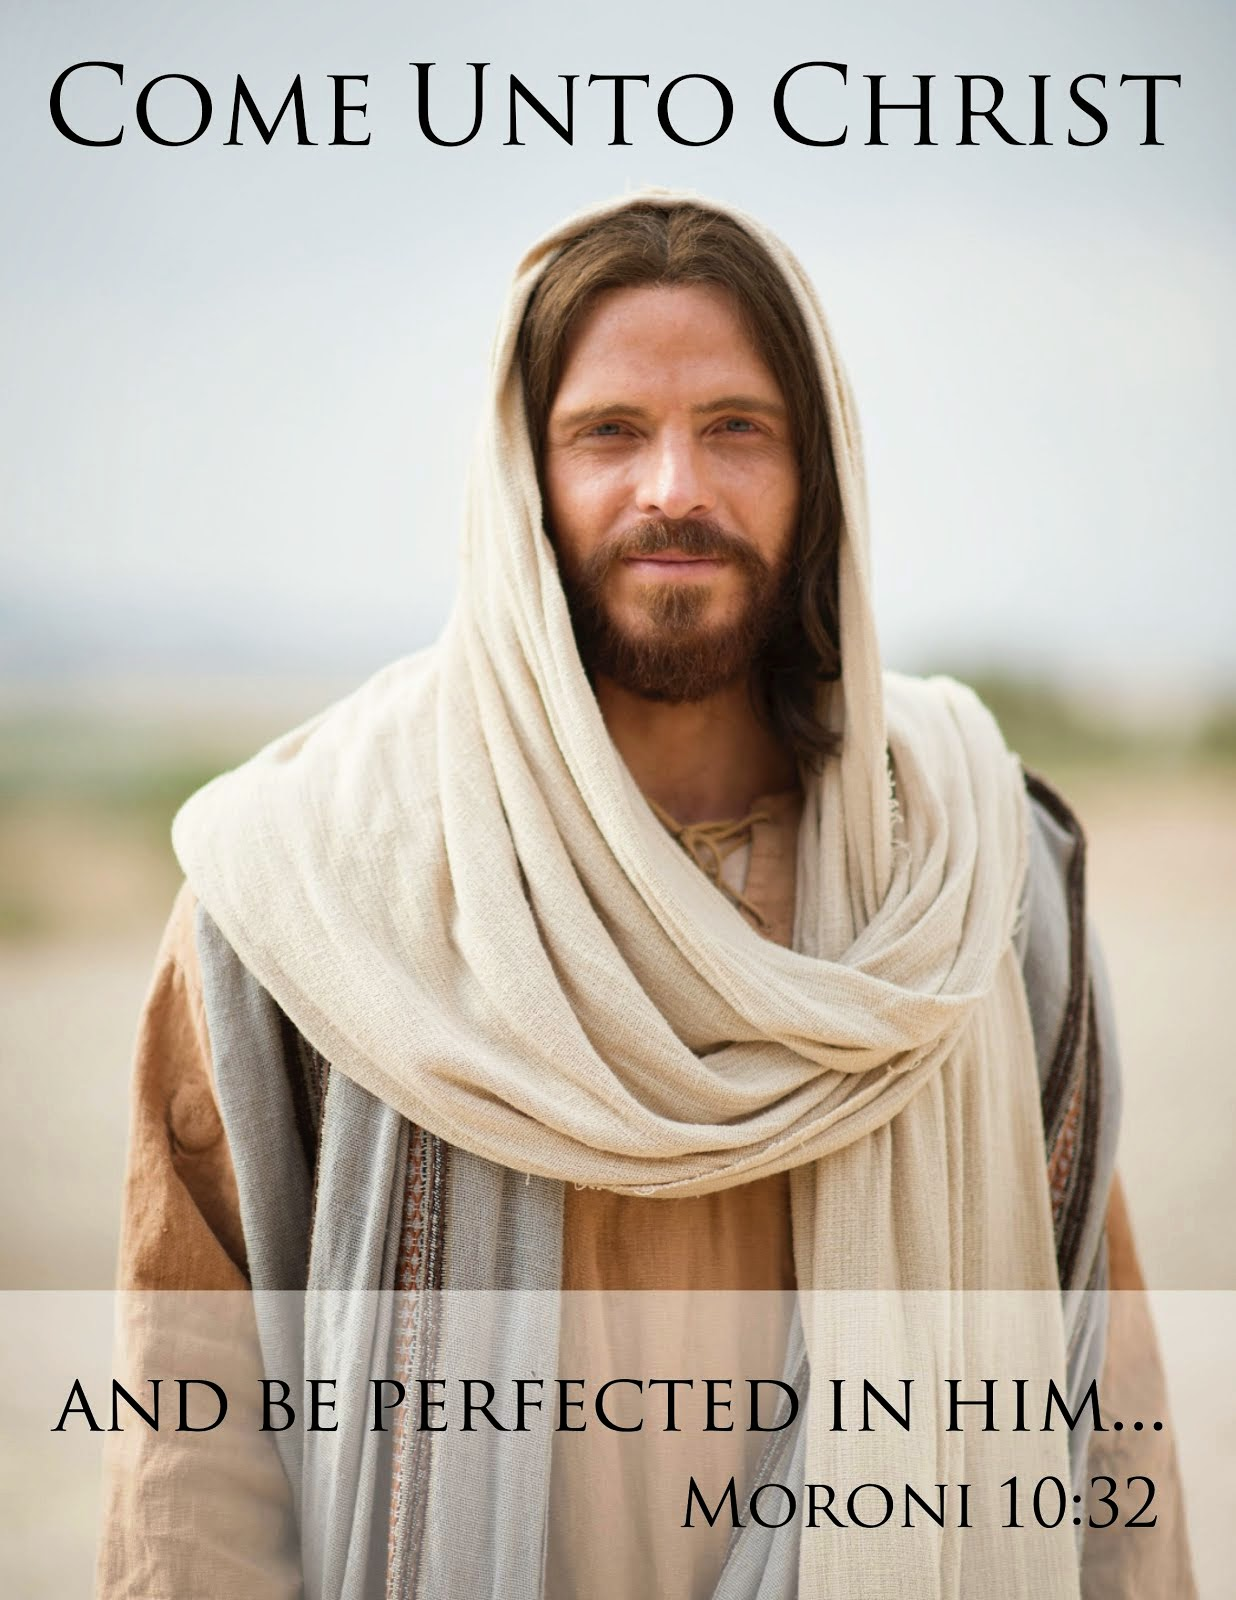 Learn more about Jesus Christ.